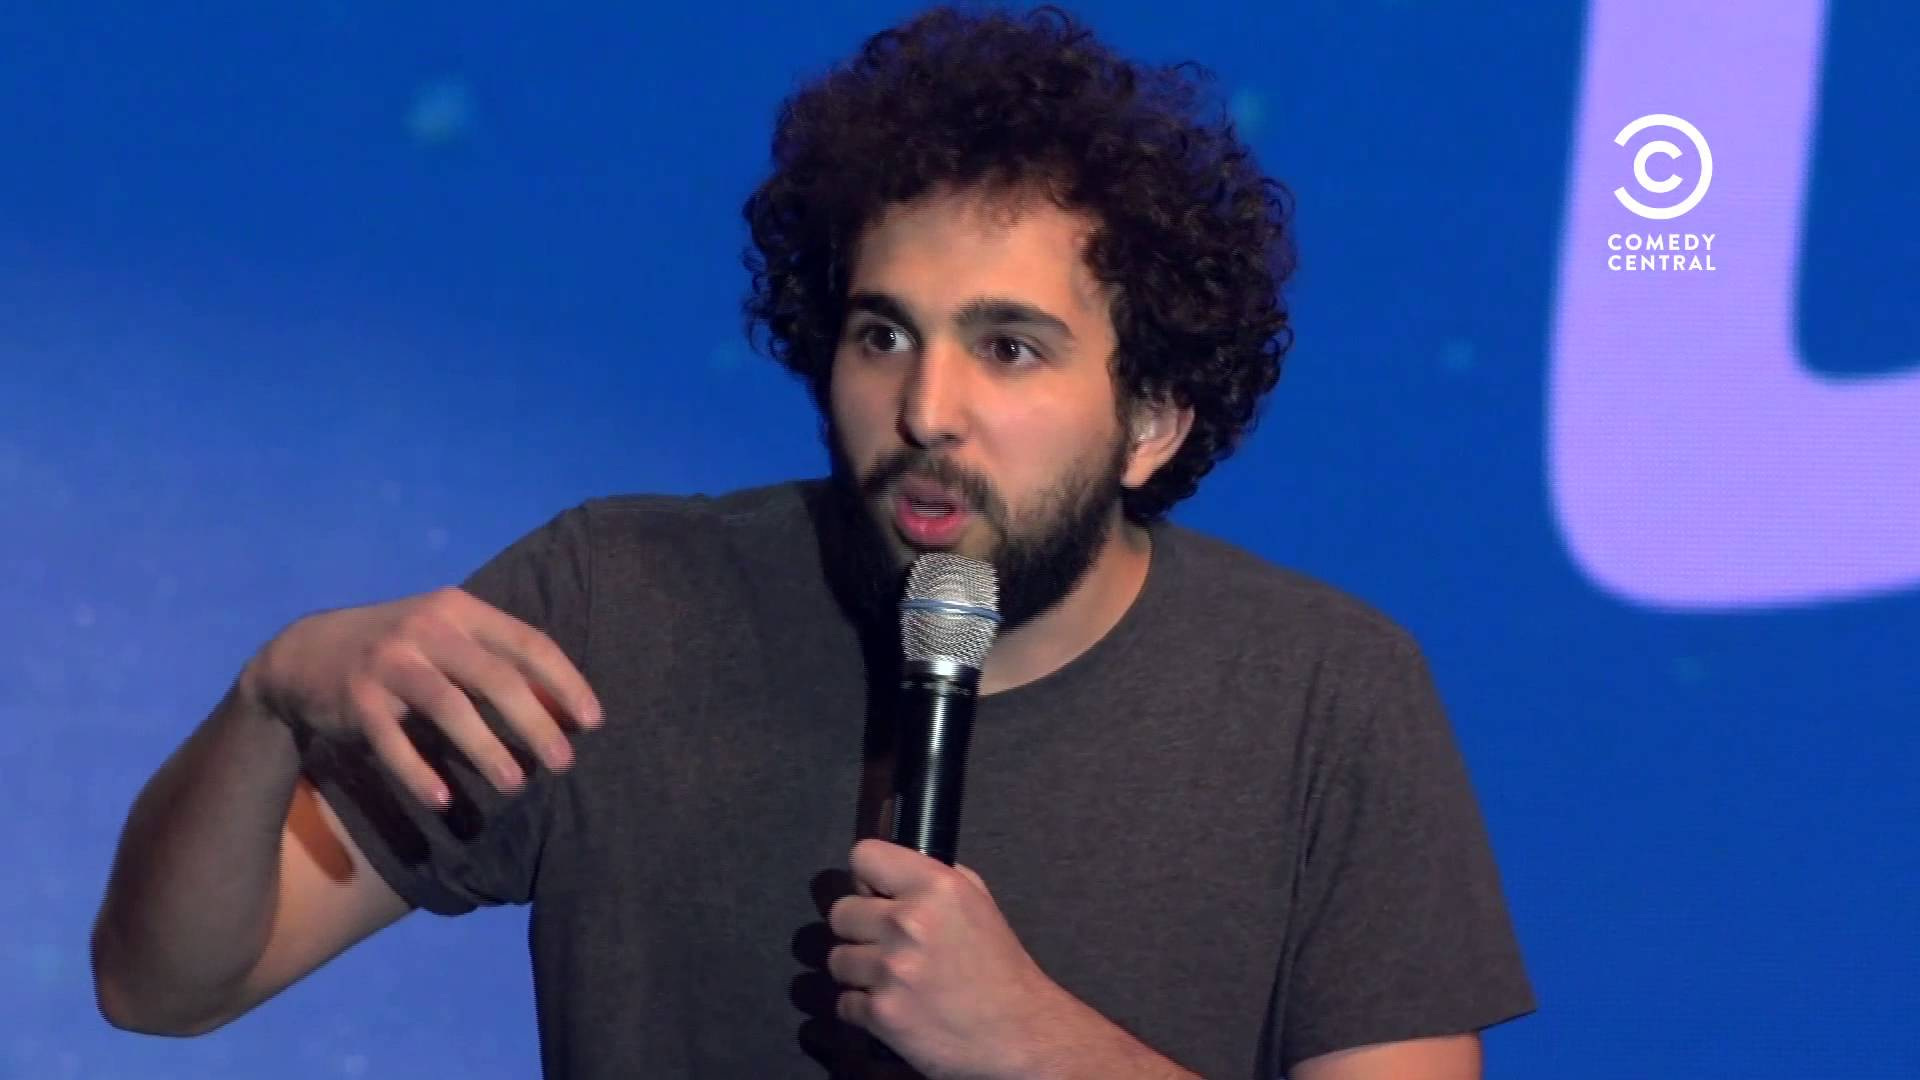 Murilo Couto Stand Up